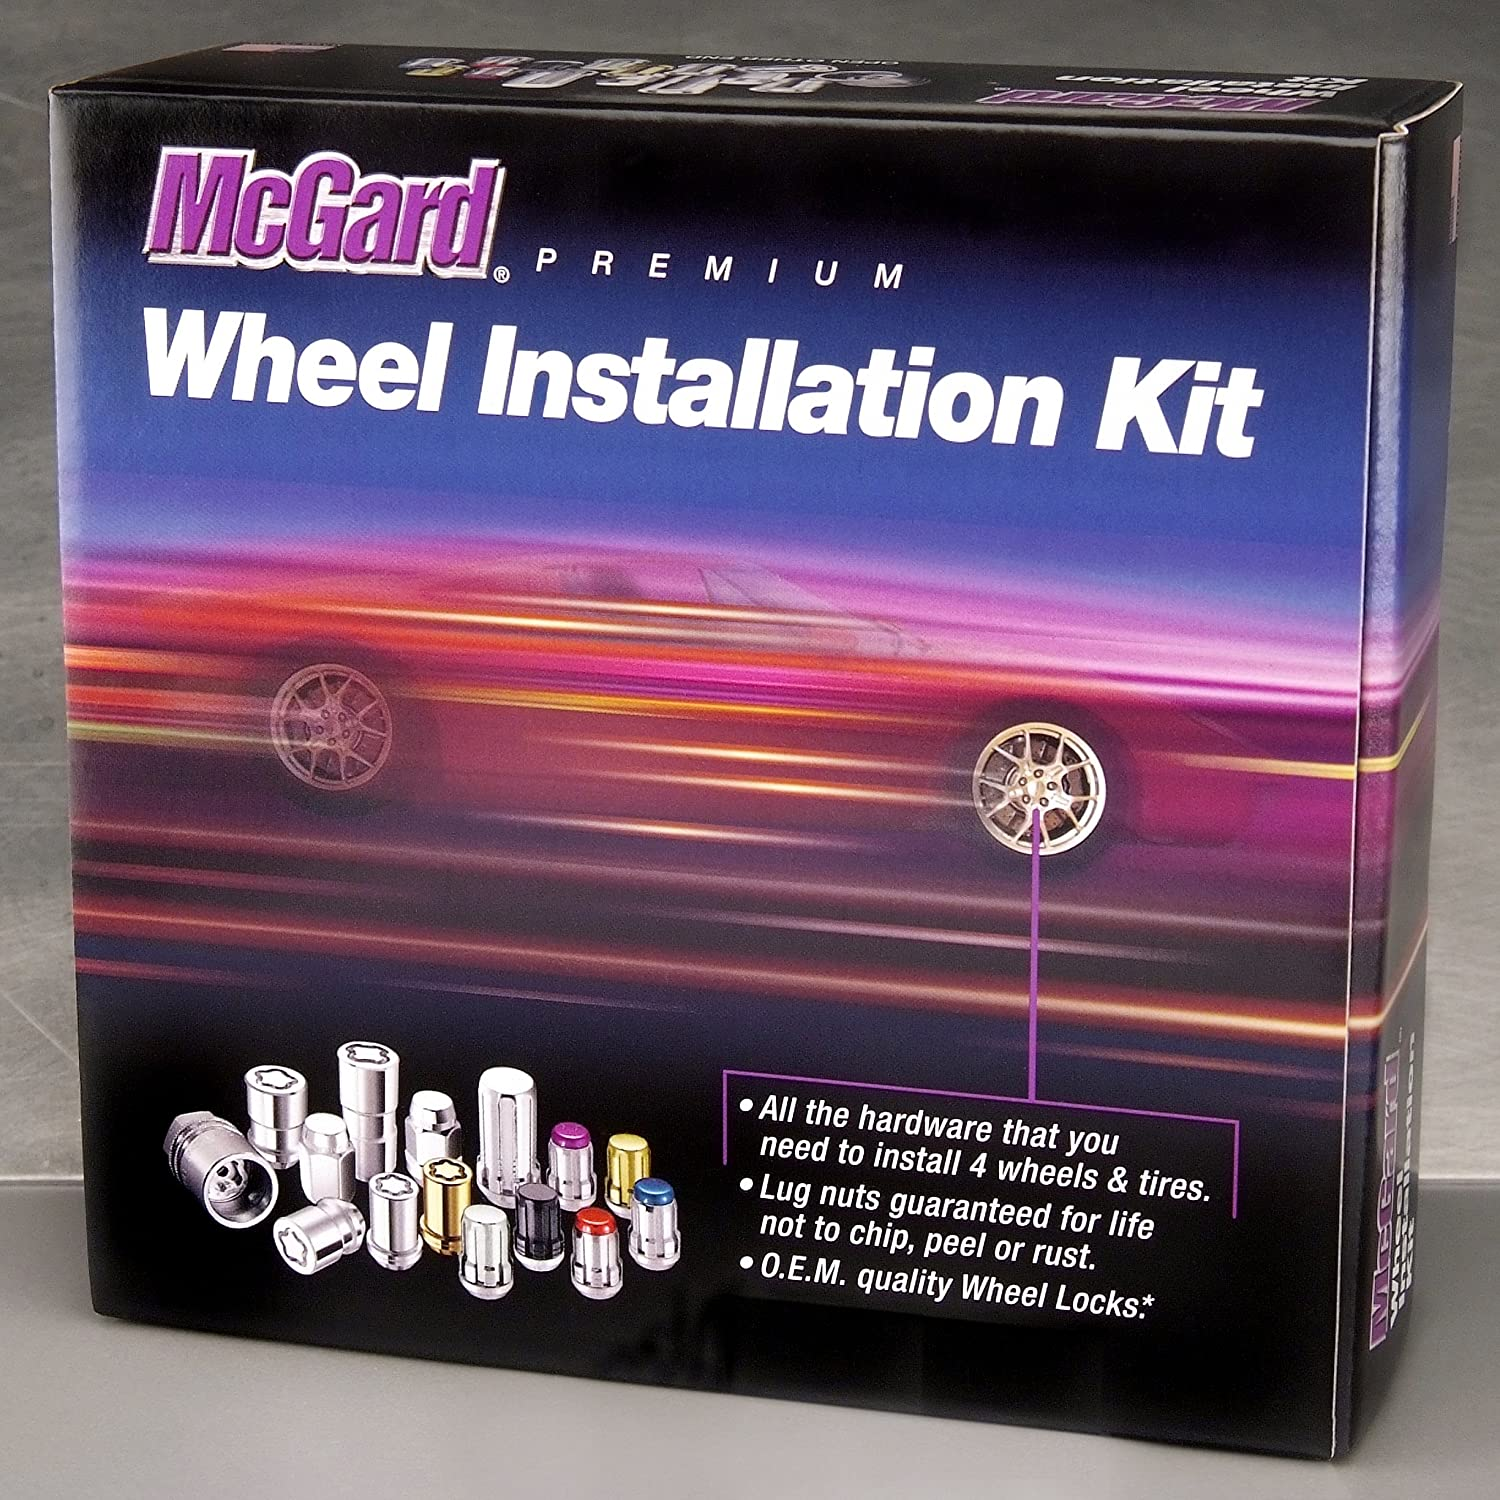 McGard 84557CN Chrome Cone Seat Wheel Installation Kit for 5 Lug Vehicles M12 x 1.5 Thread Size Clamshell Packaging